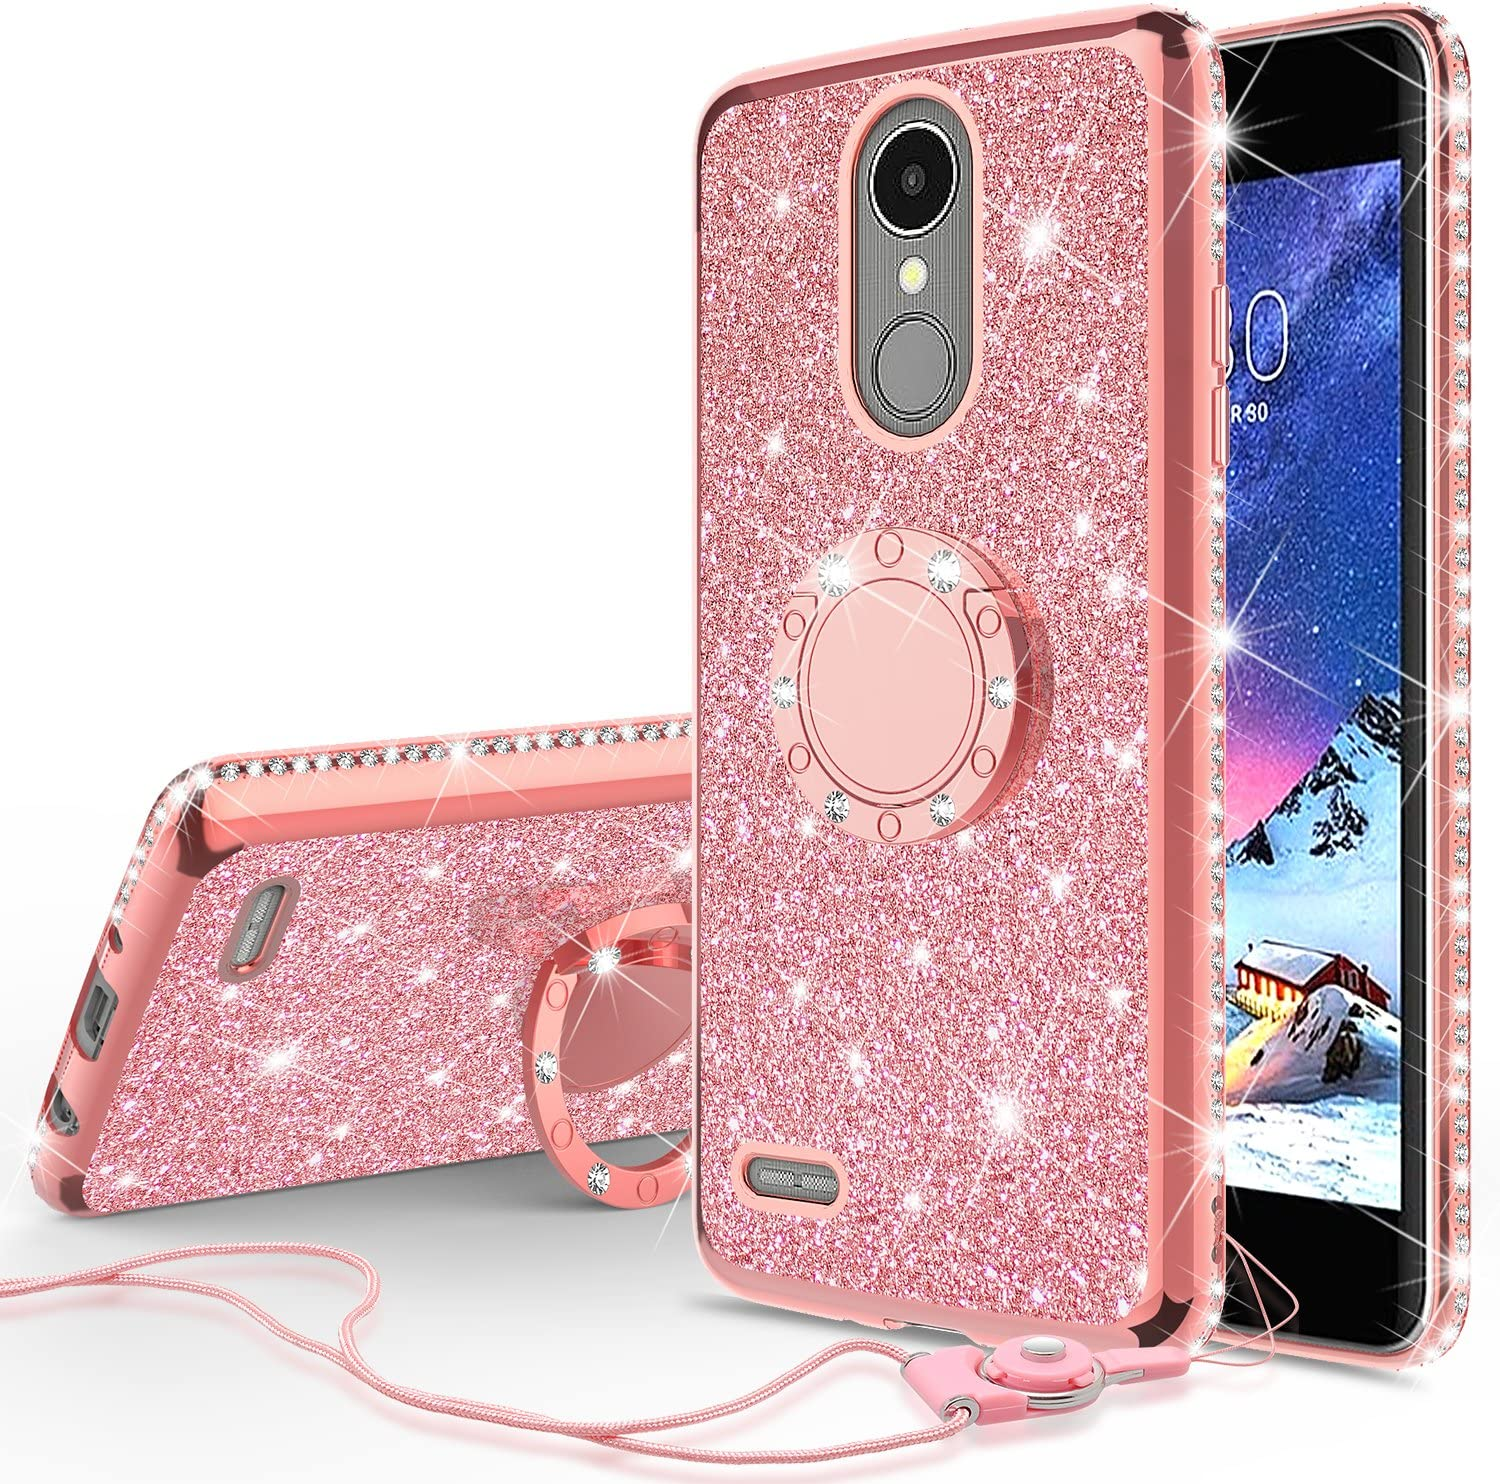 [GW USA] Glitter Cute Phone Case with Kickstand Compatible for LG K20v Case,LG K20 Plus Case, LG Harmony Case,Bling Diamond Rhinestone Bumper Ring Stand Sparkly Clear Thin Soft Girls Women (Rose Gold)